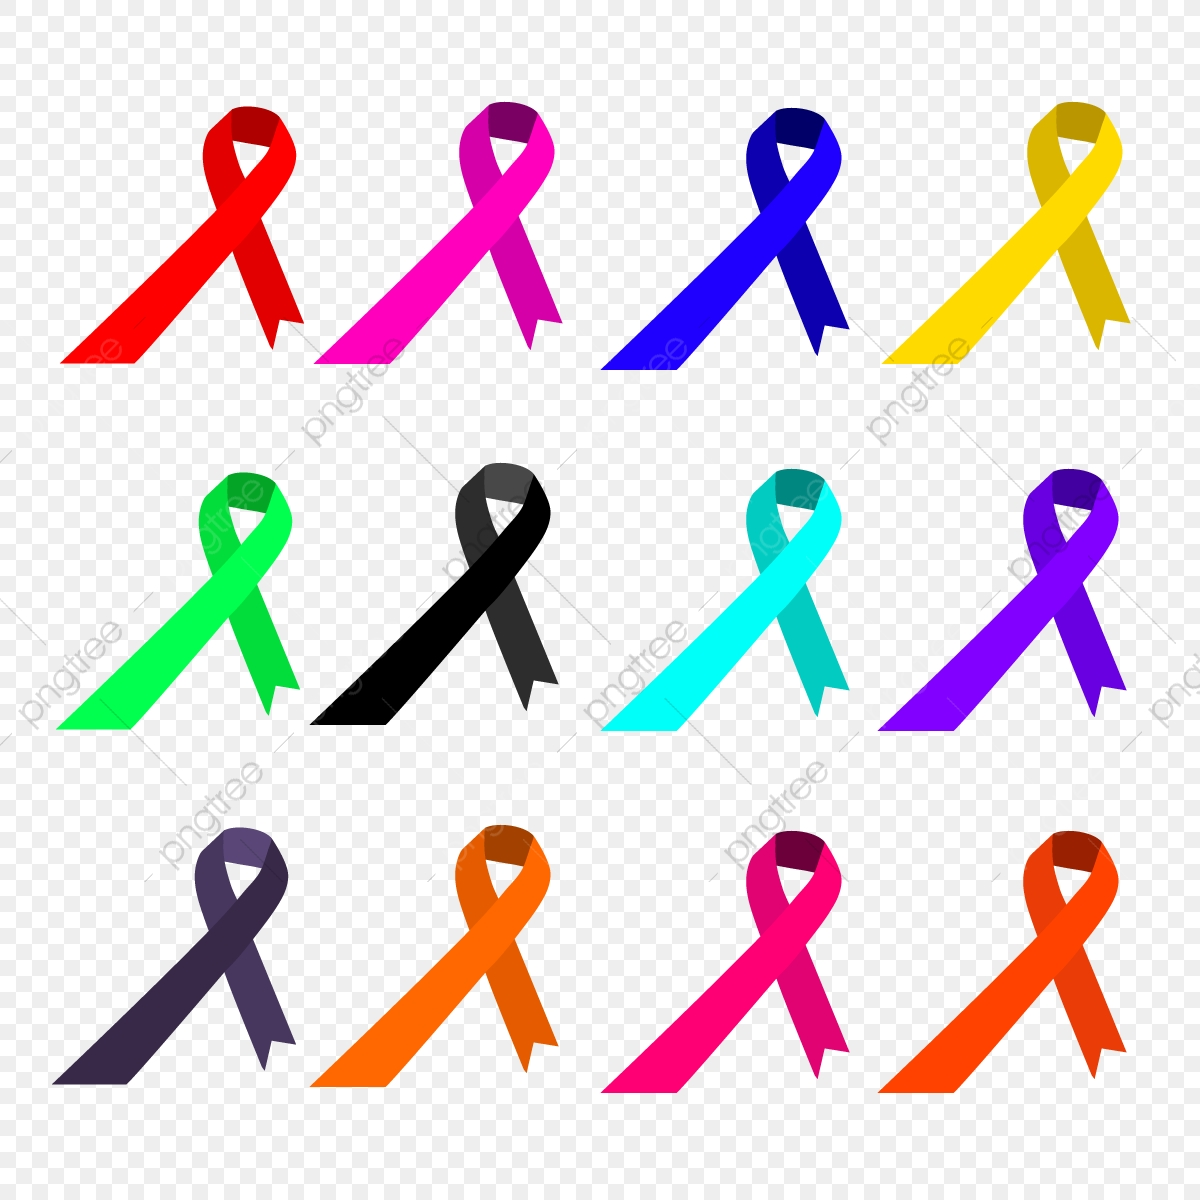 Cancer World Cancer Day Ribbon Png And Vector With Transparent Background For Free Download